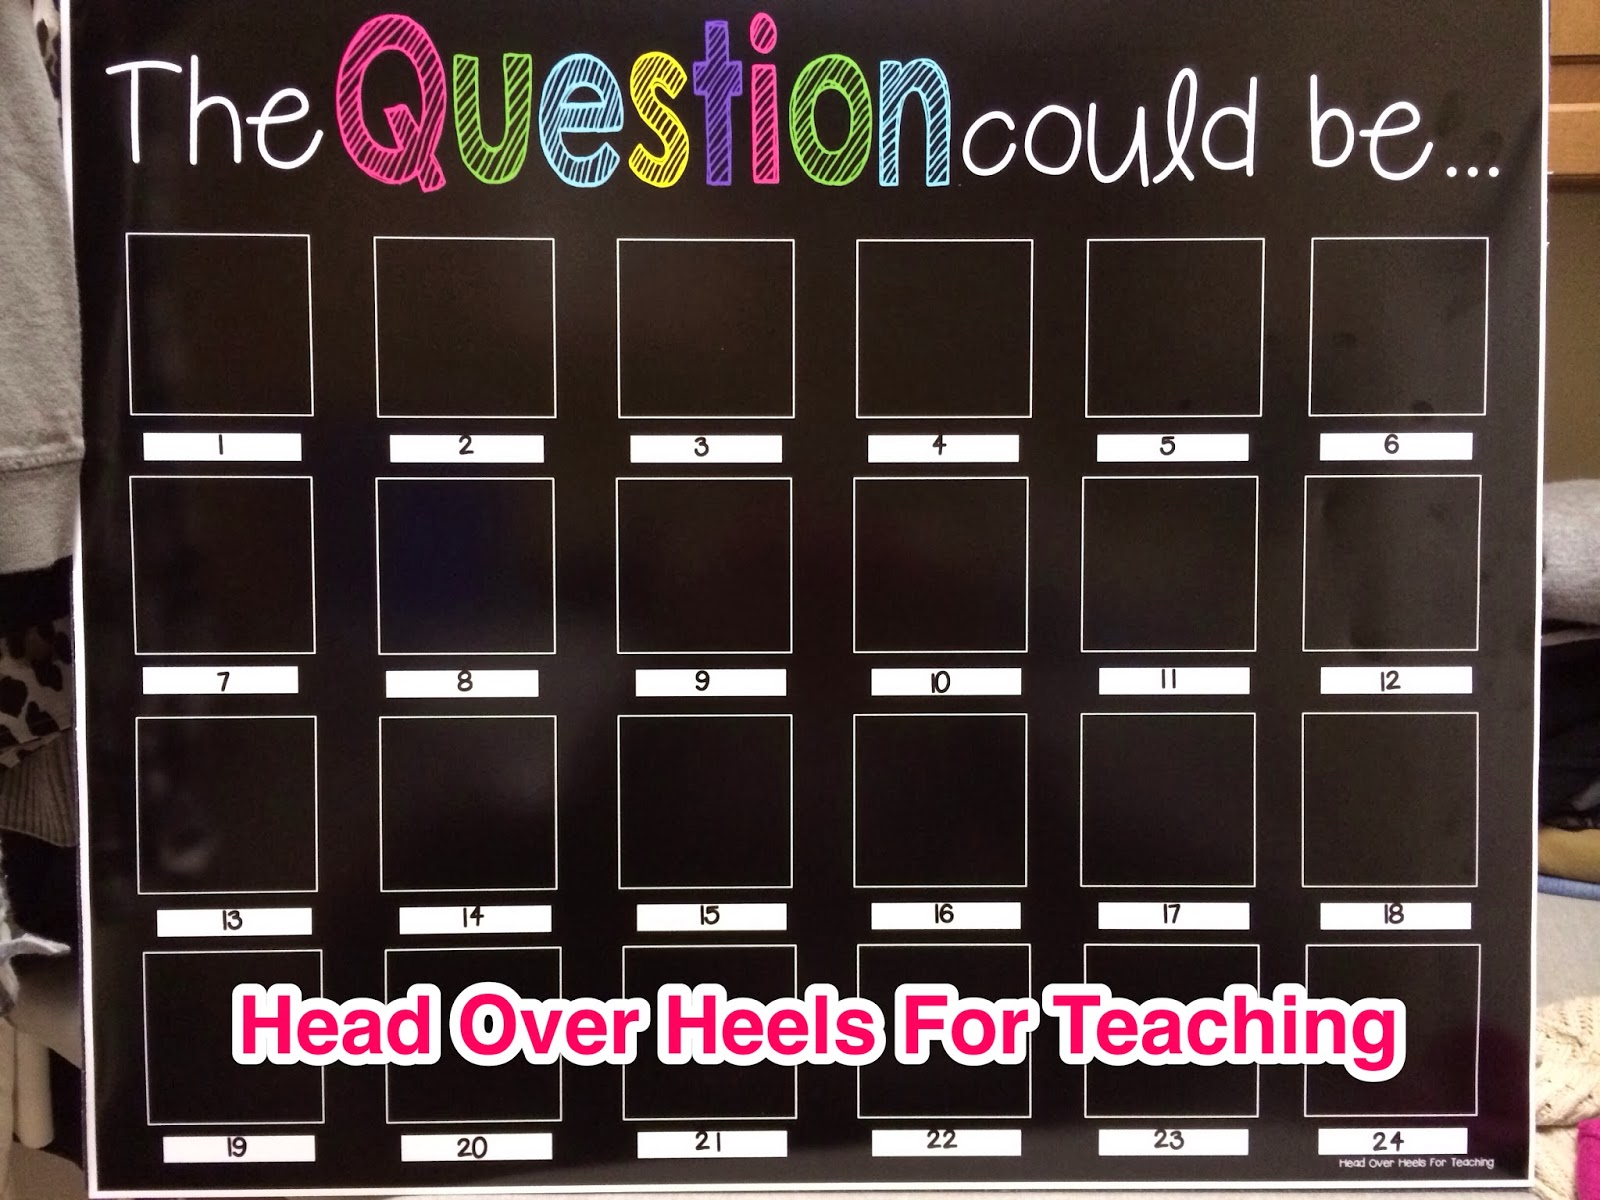 http://www.teacherspayteachers.com/Product/The-Question-Could-Be-20x24-Poster-1097493